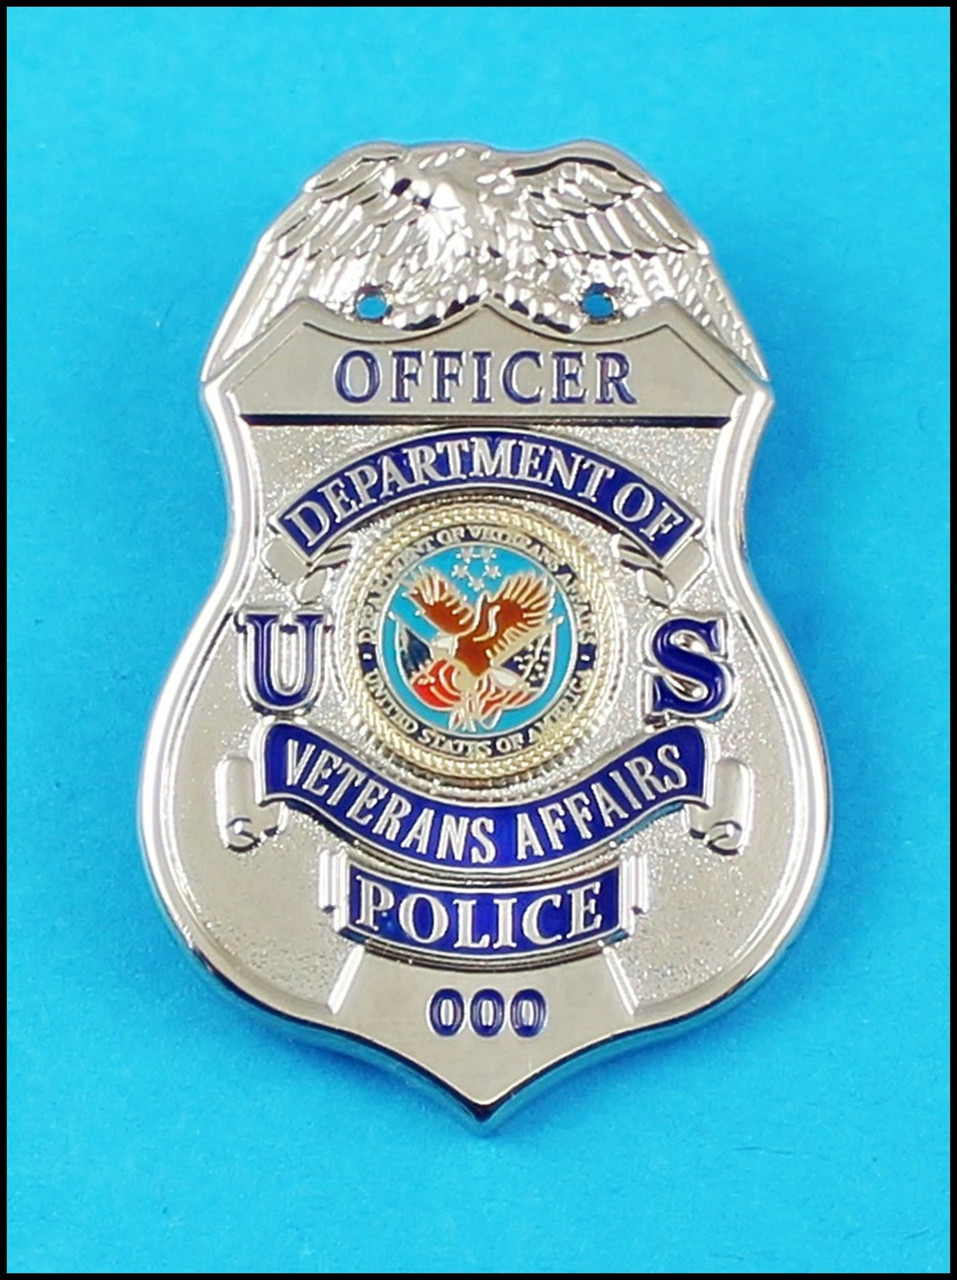 Department of Veterans Affairs Police Officer Mini Badge Lapel Pin